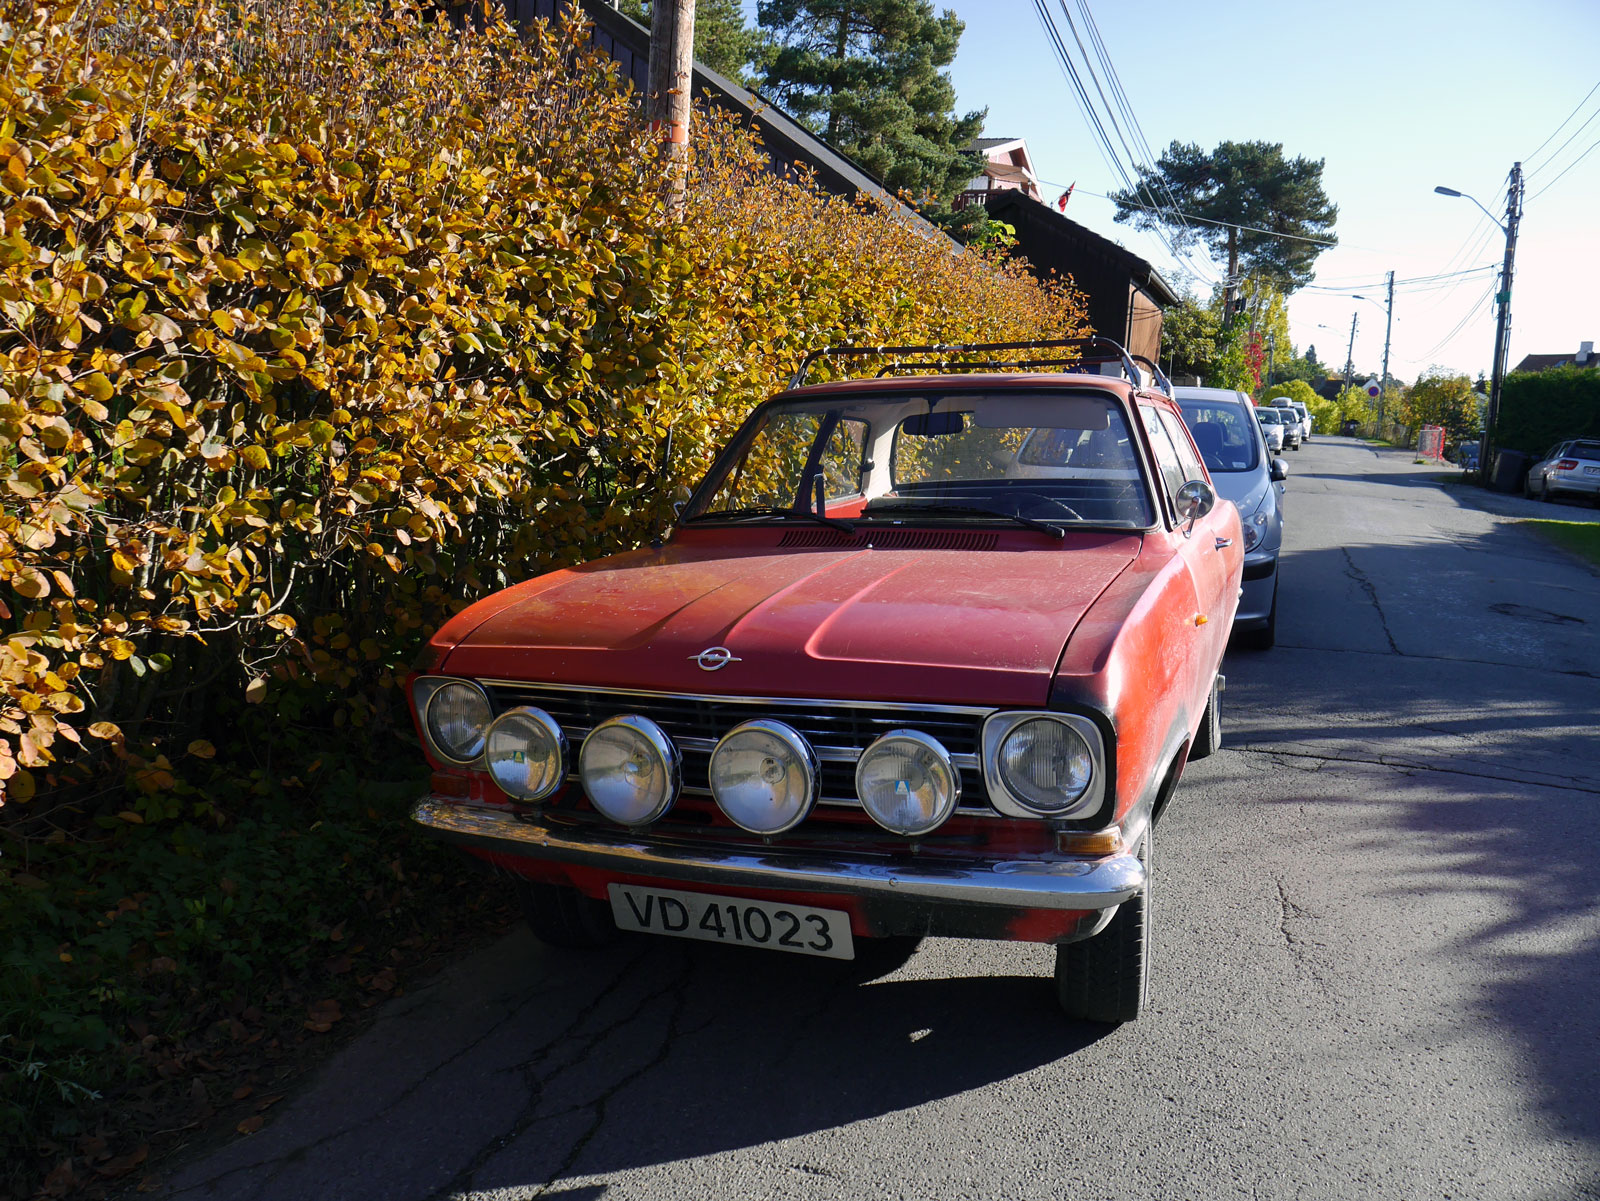 1972 Opel KADETT old parked cars norway